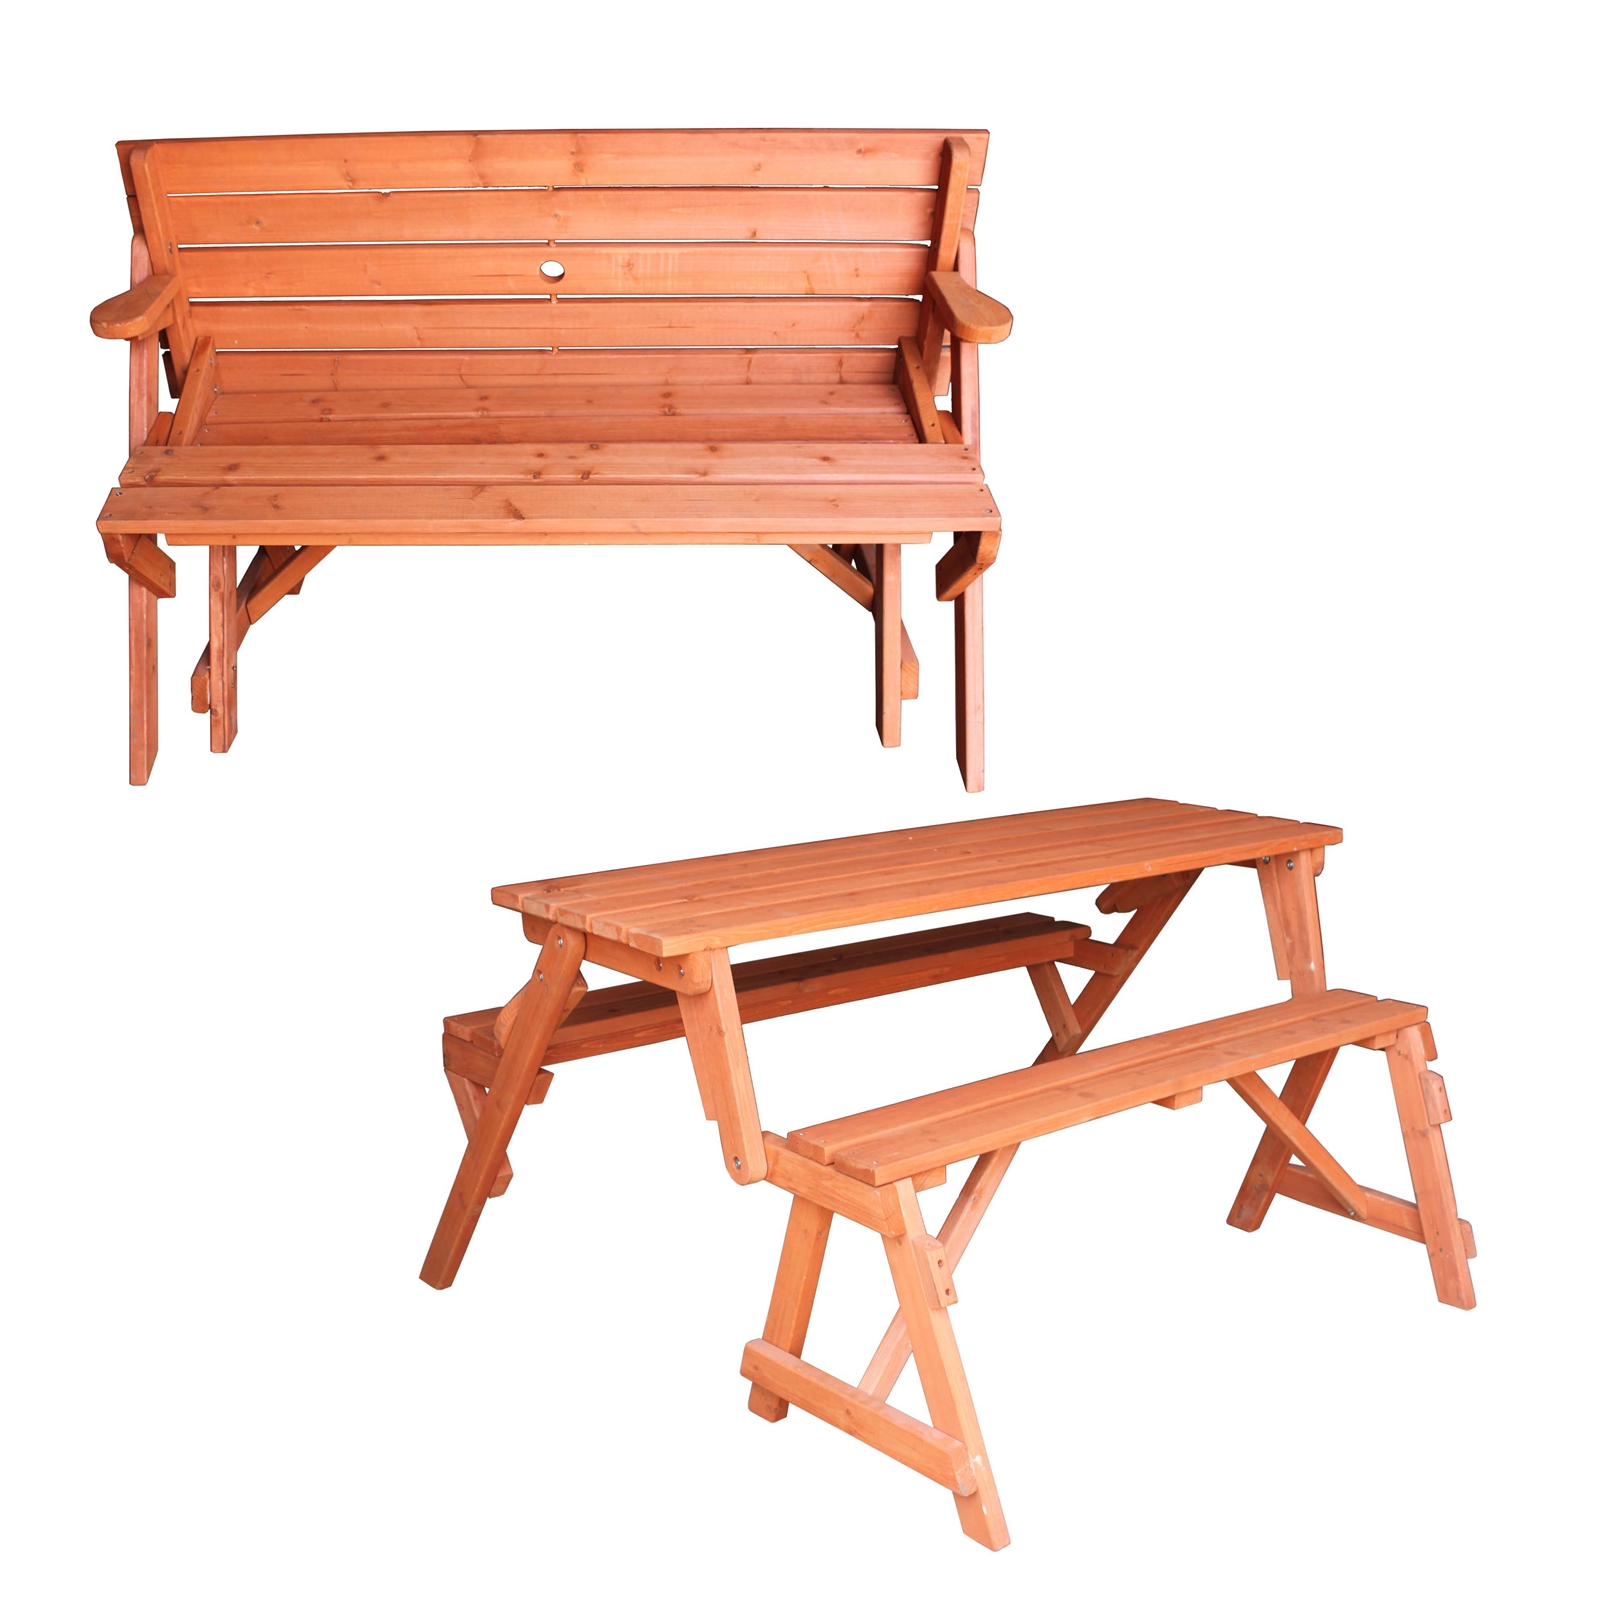 Foxhunter jardin en bois pliante picnic si ge table banc 5 for Table exterieur avec banc